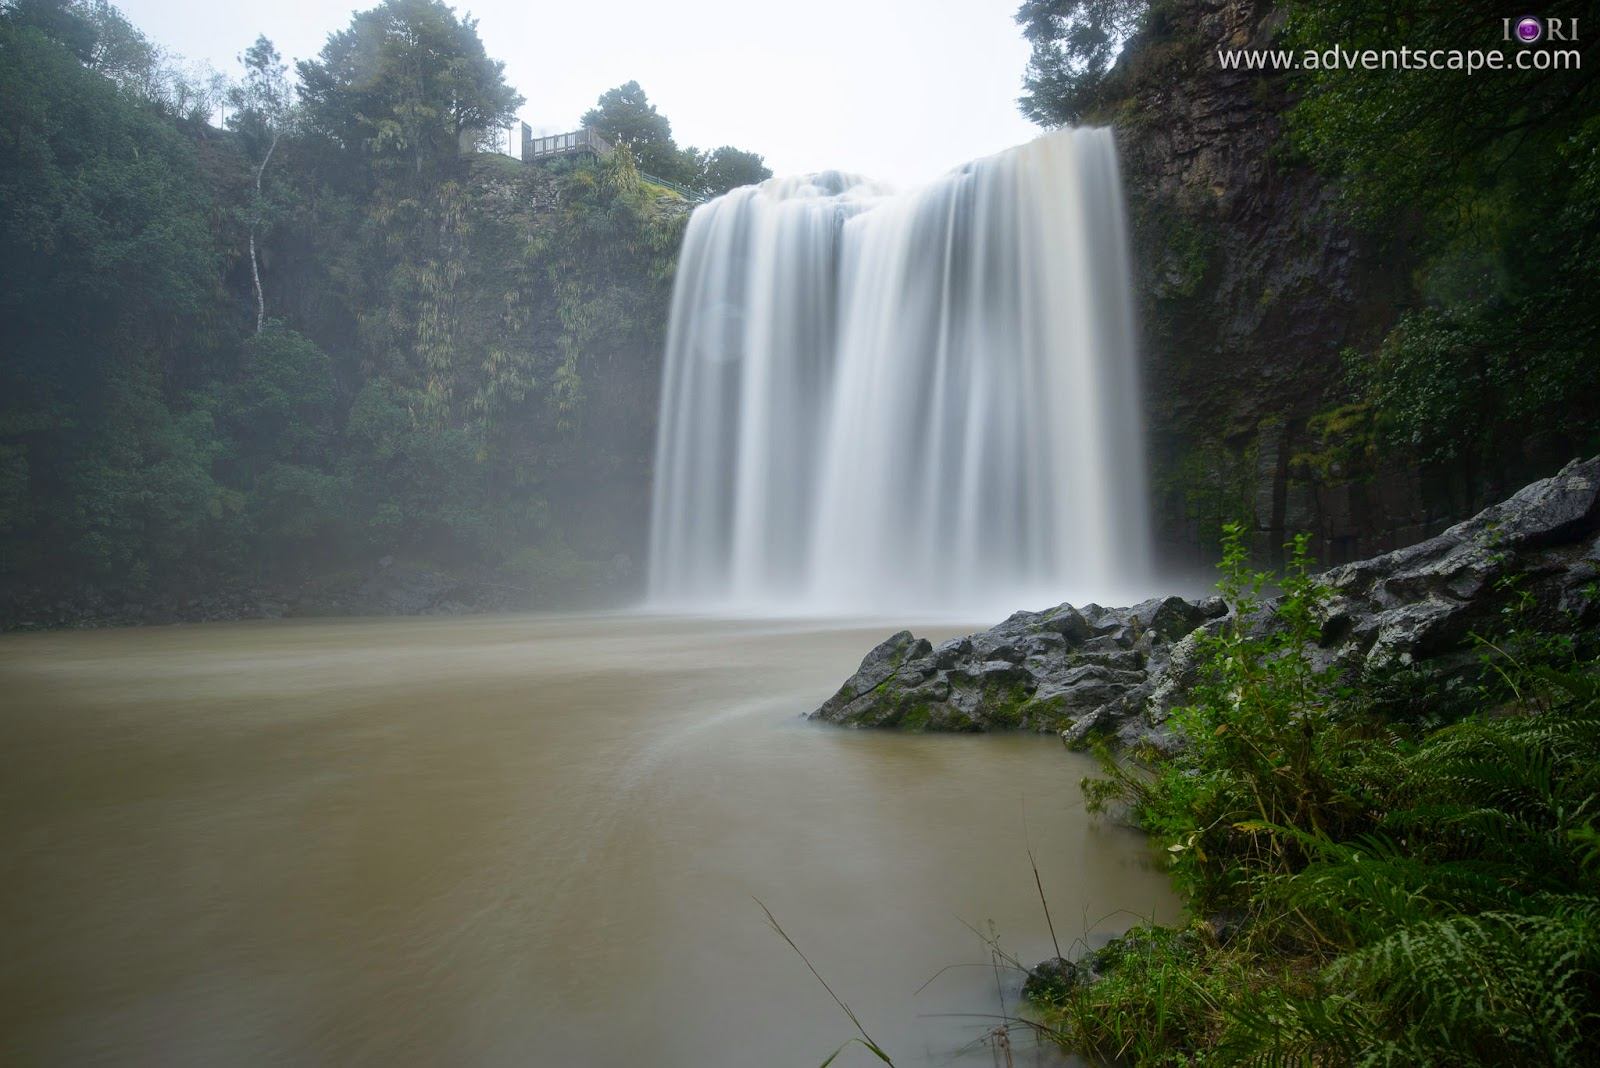 Philip Avellana, adventscape, iori, Whangarei falls, waterfalls, North Island, New Zealand, travel, tour, places to visit, landscape, nature photos, bridge, camera right, fall's bed